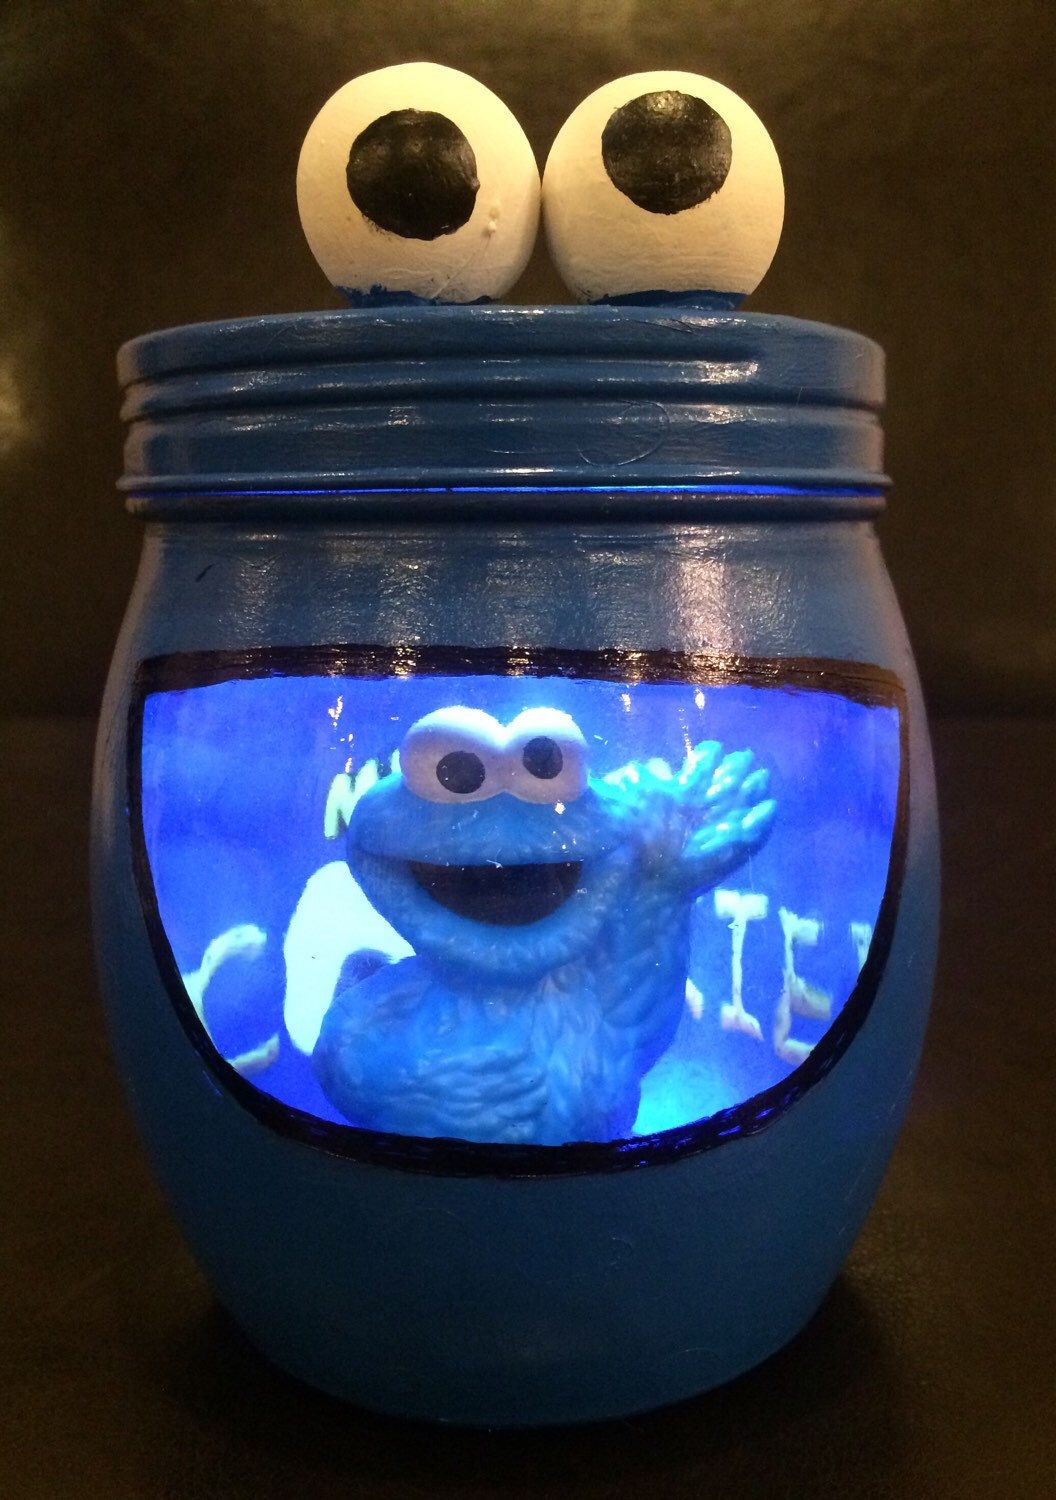 Cookie Monster night light. Cookie Monster light. Sesame Street night light. Cookie Monster LED night light, Elmo and Friends light by AmericanaGloriana on Etsy https://www.etsy.com/listing/257387614/cookie-monster-night-light-cookie